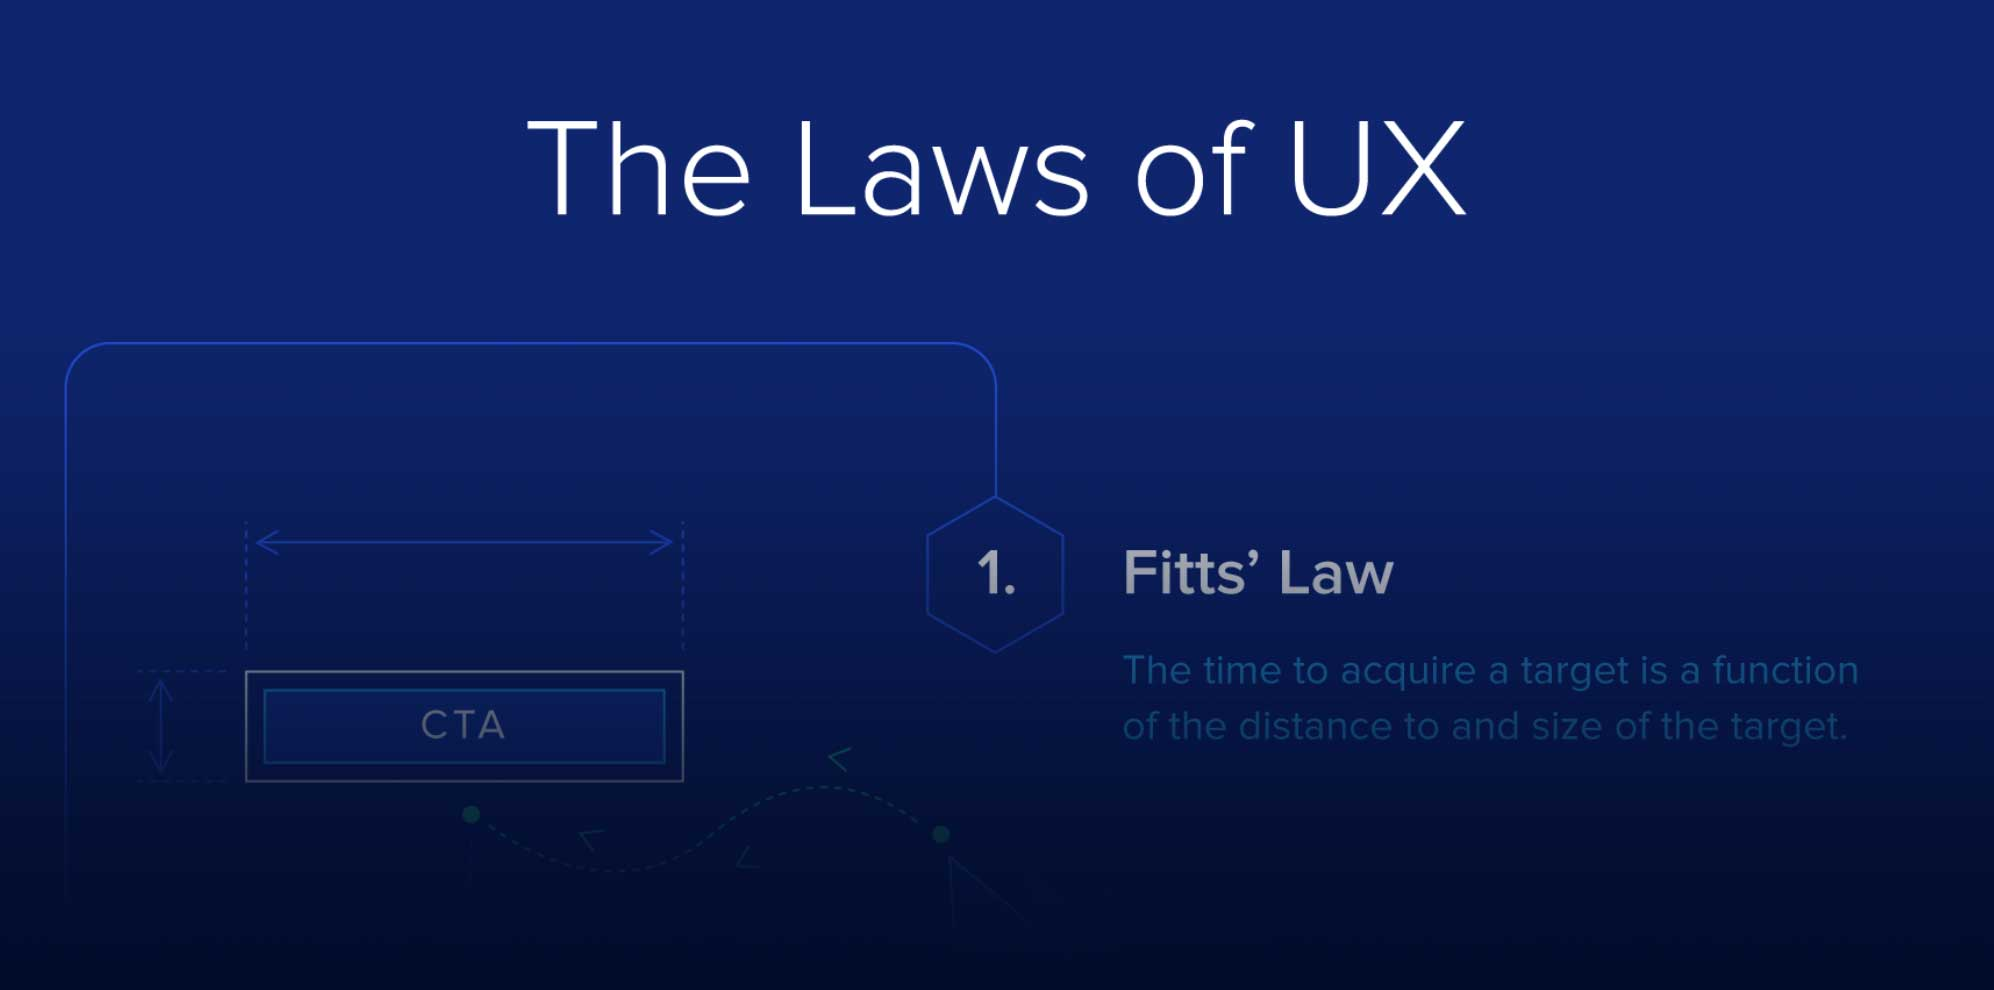 11 tried and true laws of UX [Infographic]